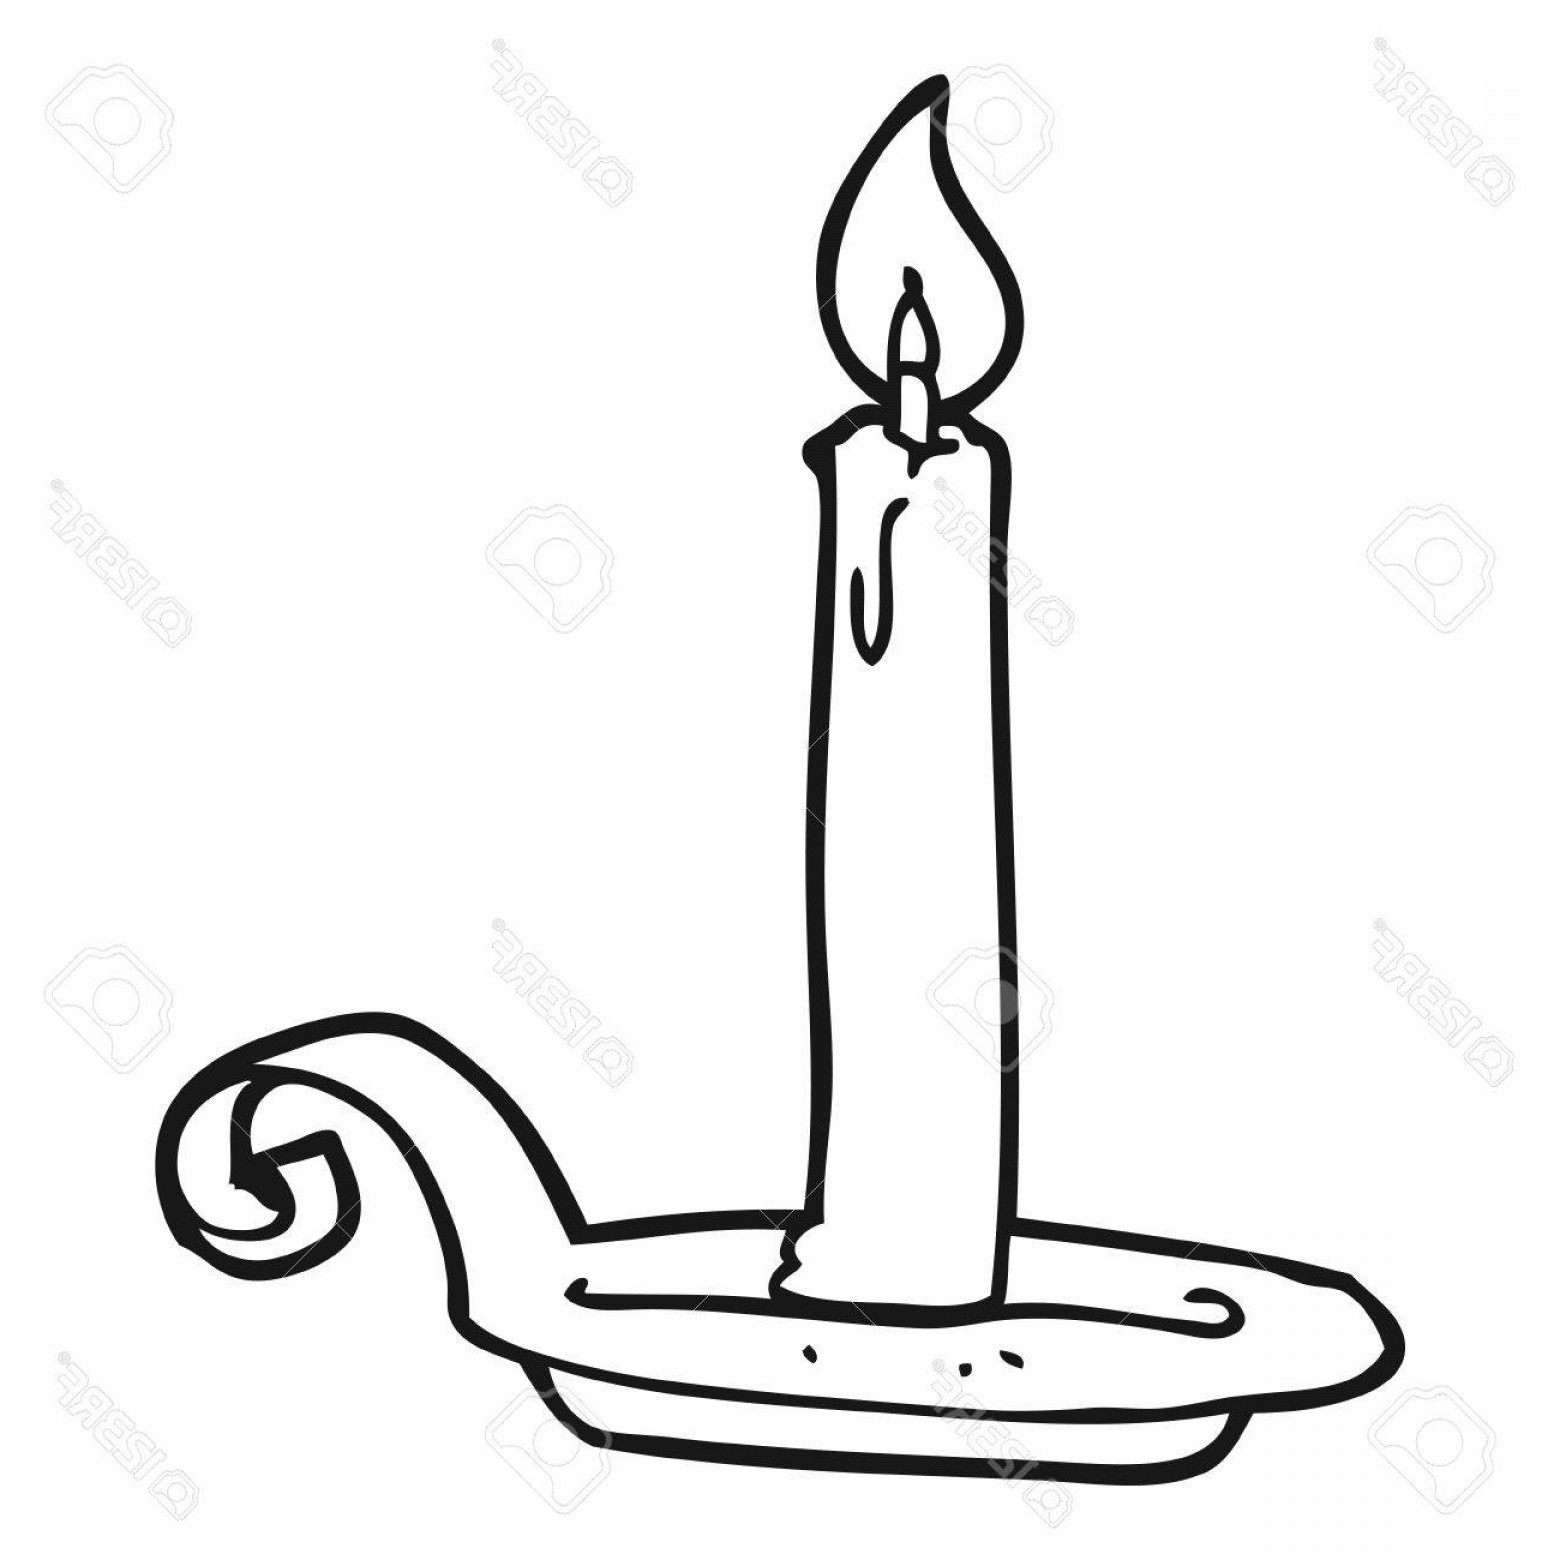 Candle Vector Black: Photostock Vector Freehand Drawn Black And White Cartoon Candle Burning